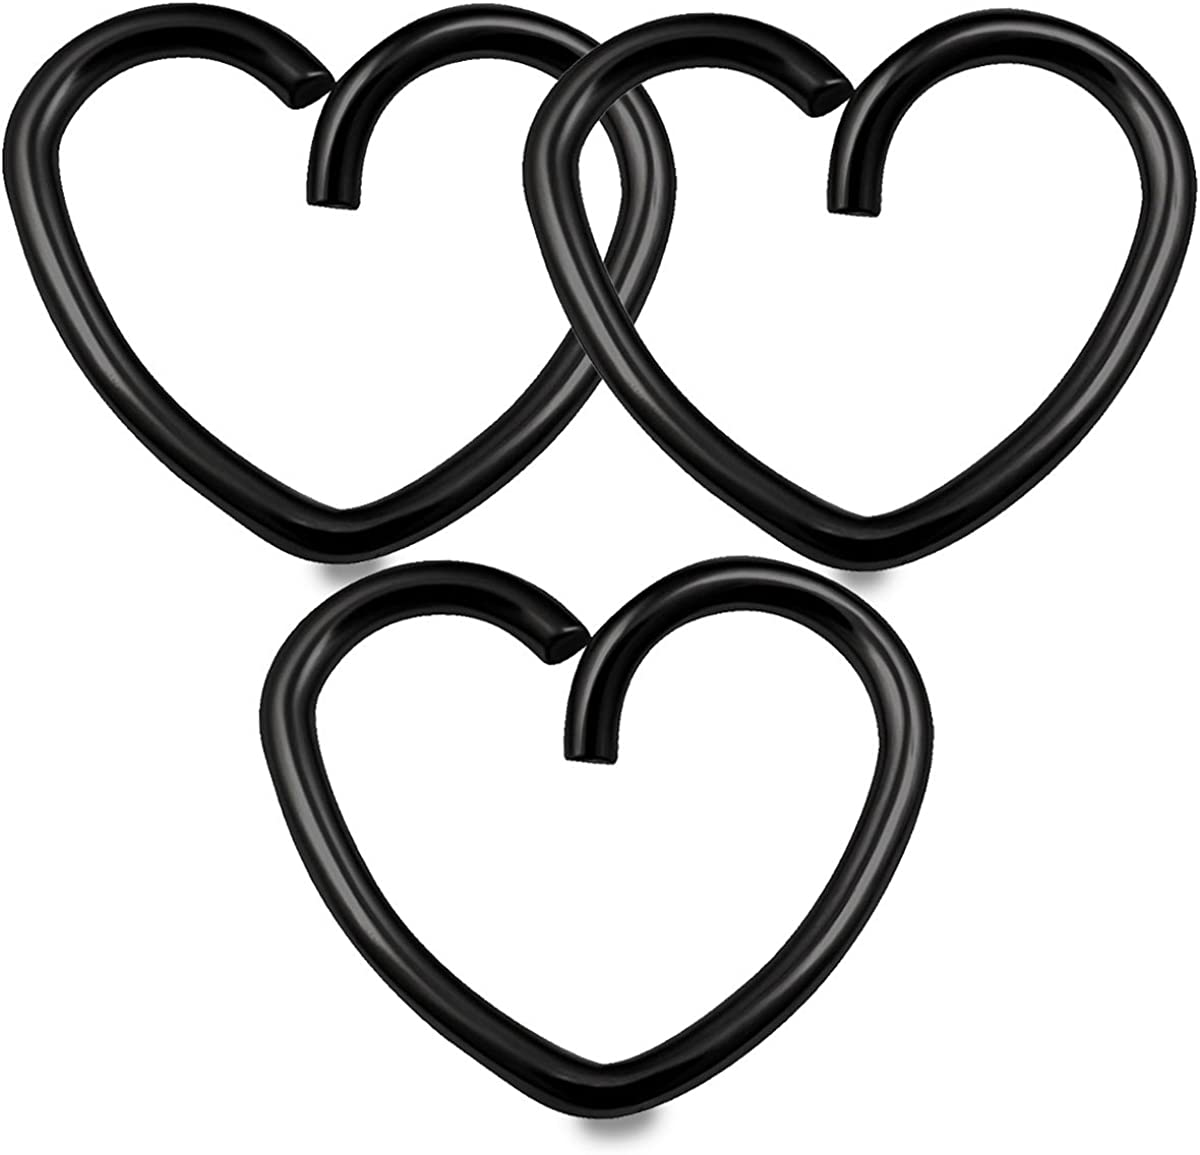 bodyjewellery 3pcs 18g 3/8 Heart Hoop Earring Cartilage Daith Rook Tragus Helix Surgical Steel Anodized Conch Auricle Lobe - Pick Color